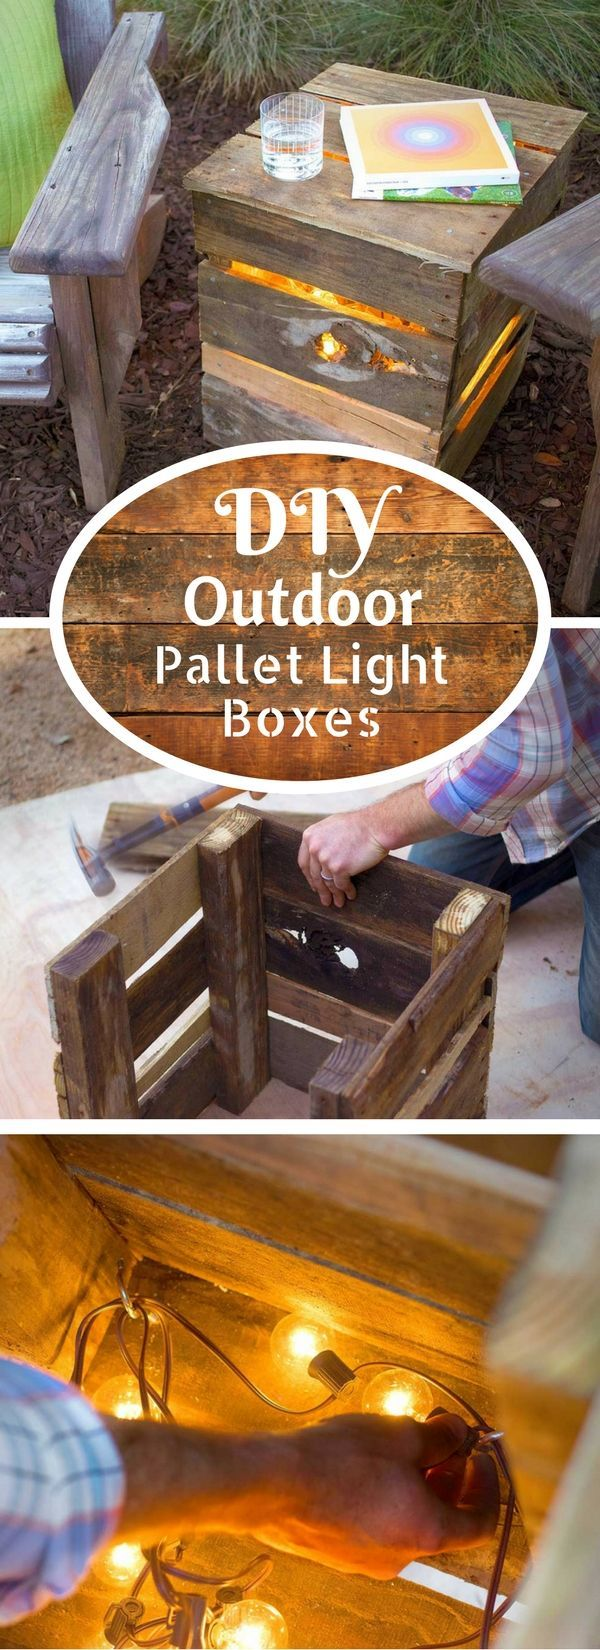 Check out the tutorial on how to make easy DIY outdoor pallet lights @istandarddesign